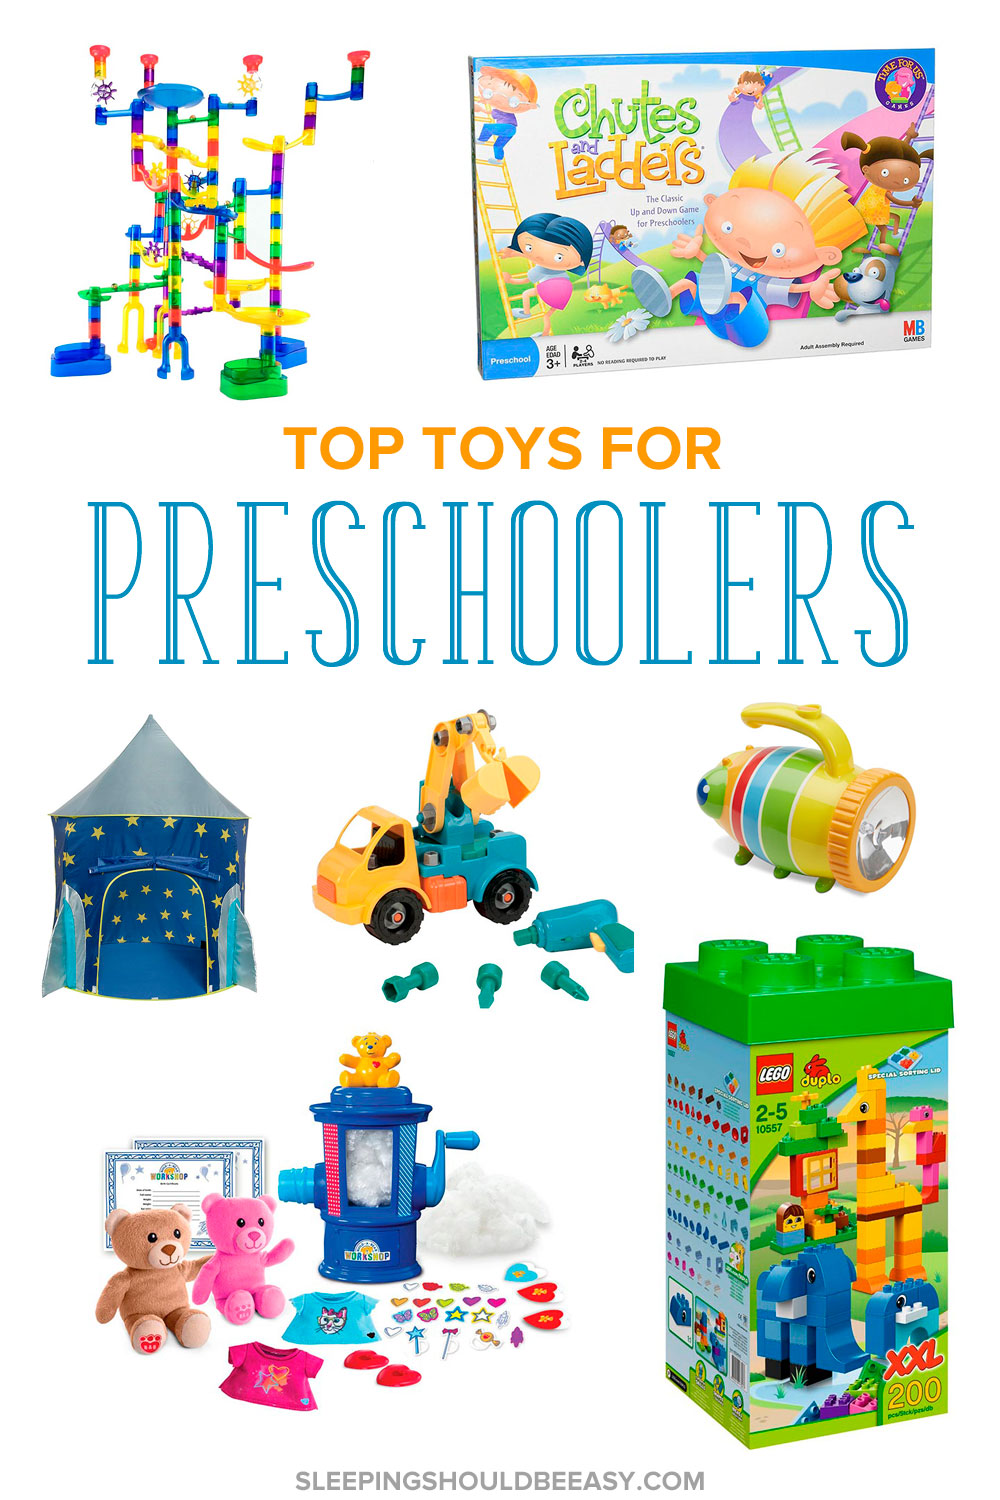 Looking for gifts for two- to four-year-olds? Check out these top preschool toys for birthdays and holidays. Unique, enjoyable and fun!